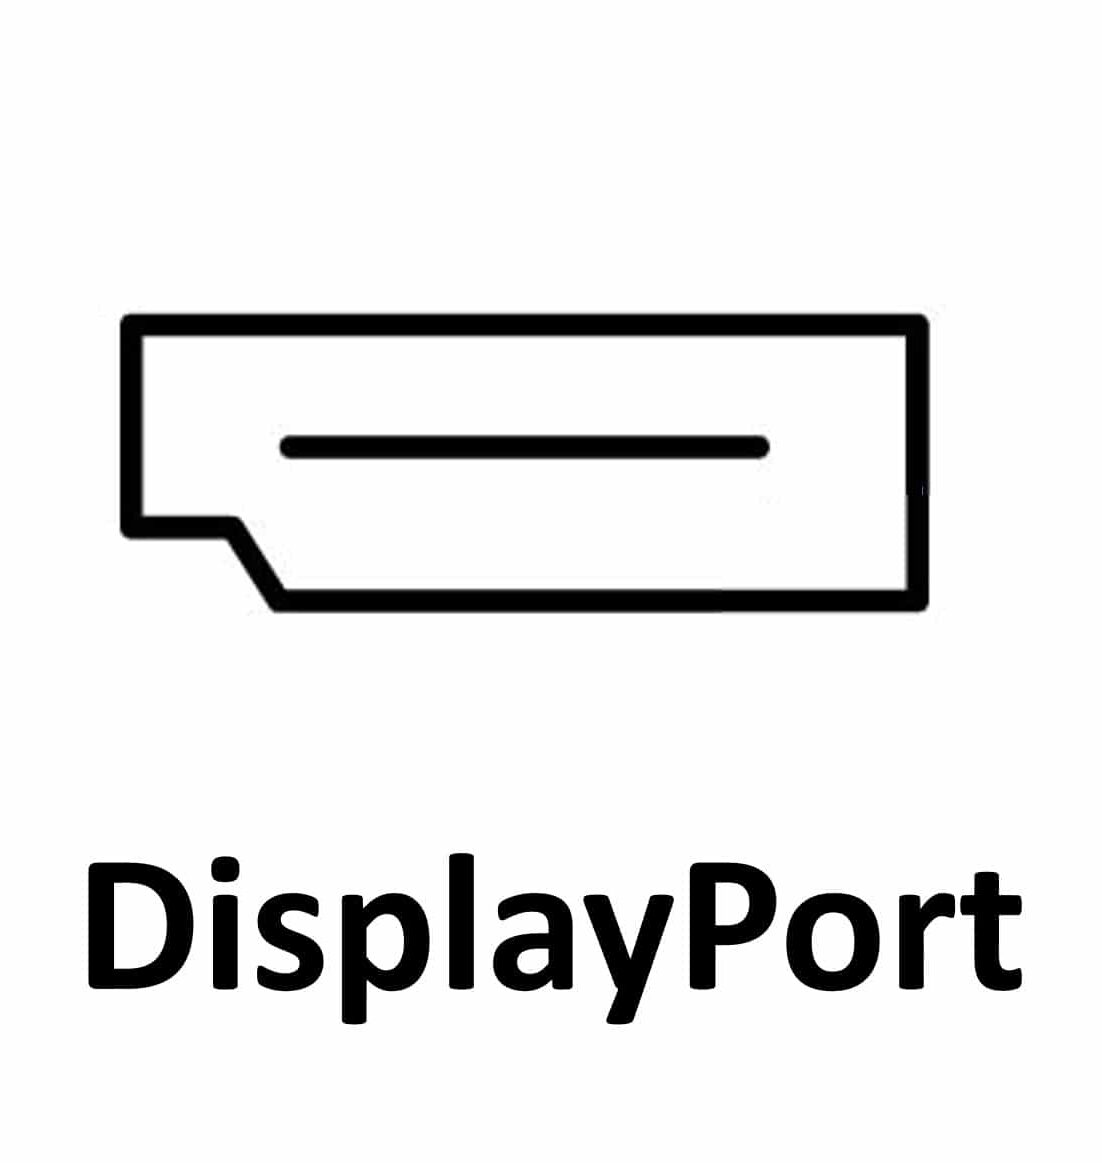 Displayport icon